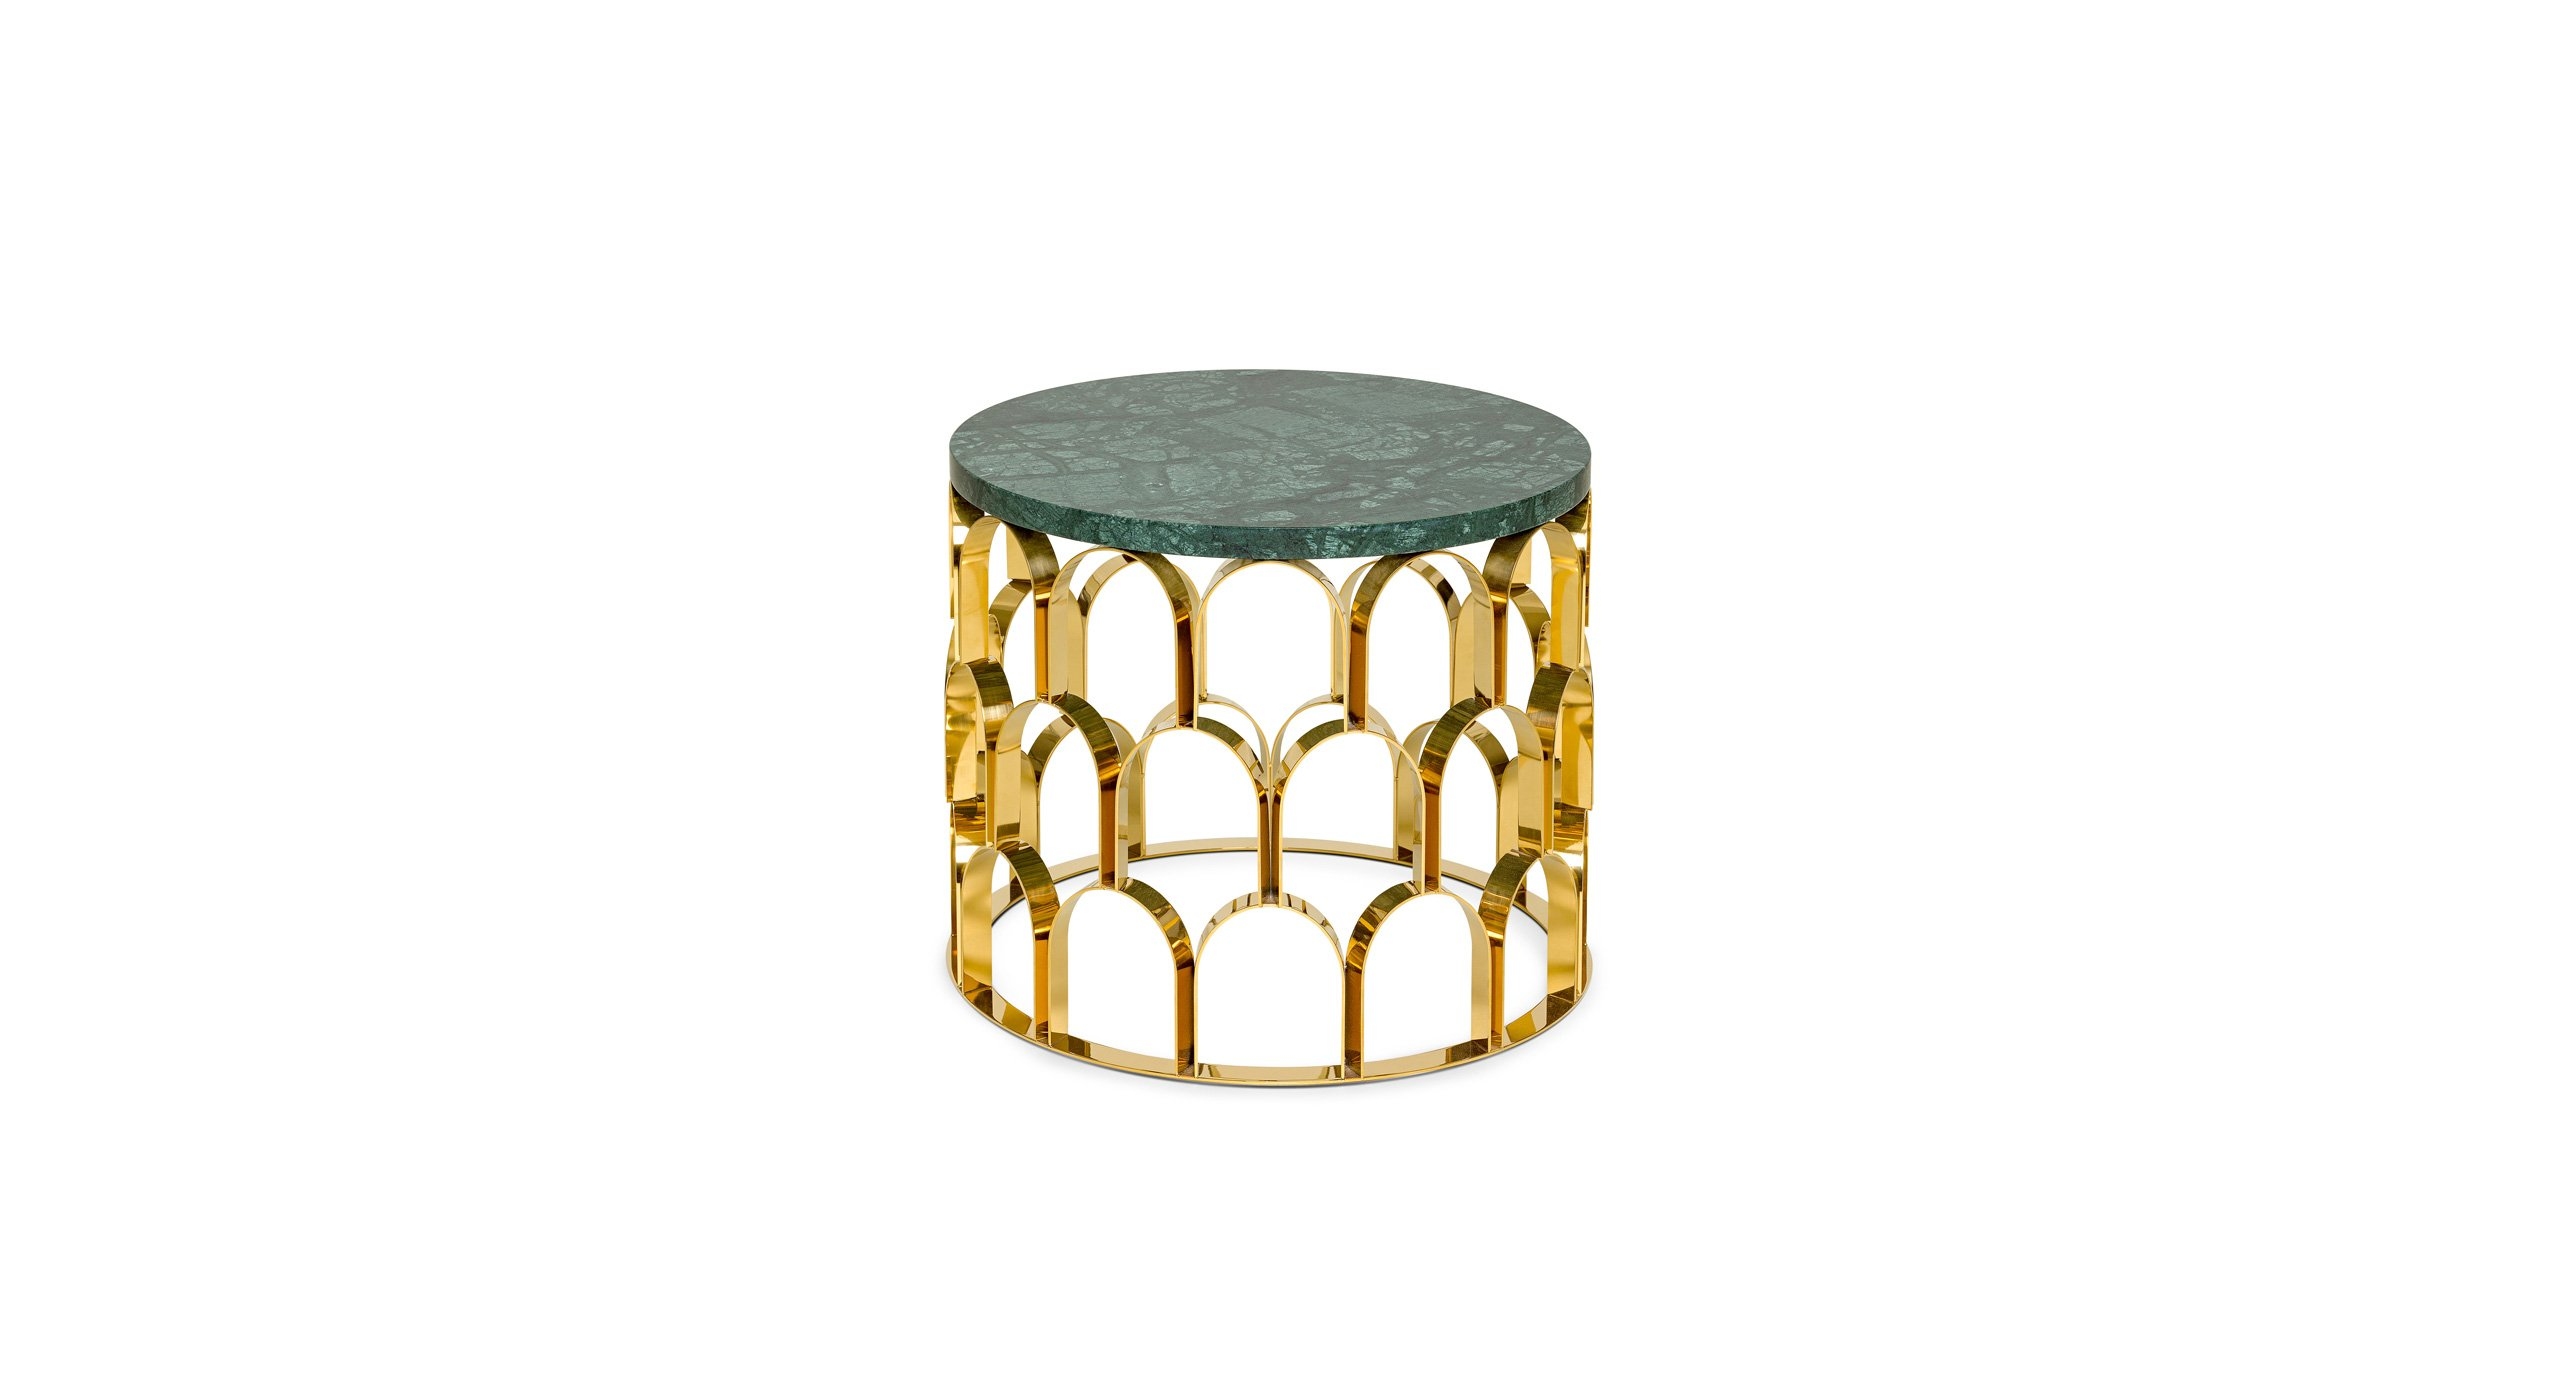 ANANAZ side table in Guatemala Green marble in polished finishing; base in stainless steel coated in Brass finishing in polished finishing. Photo© Ginger & Jagger.